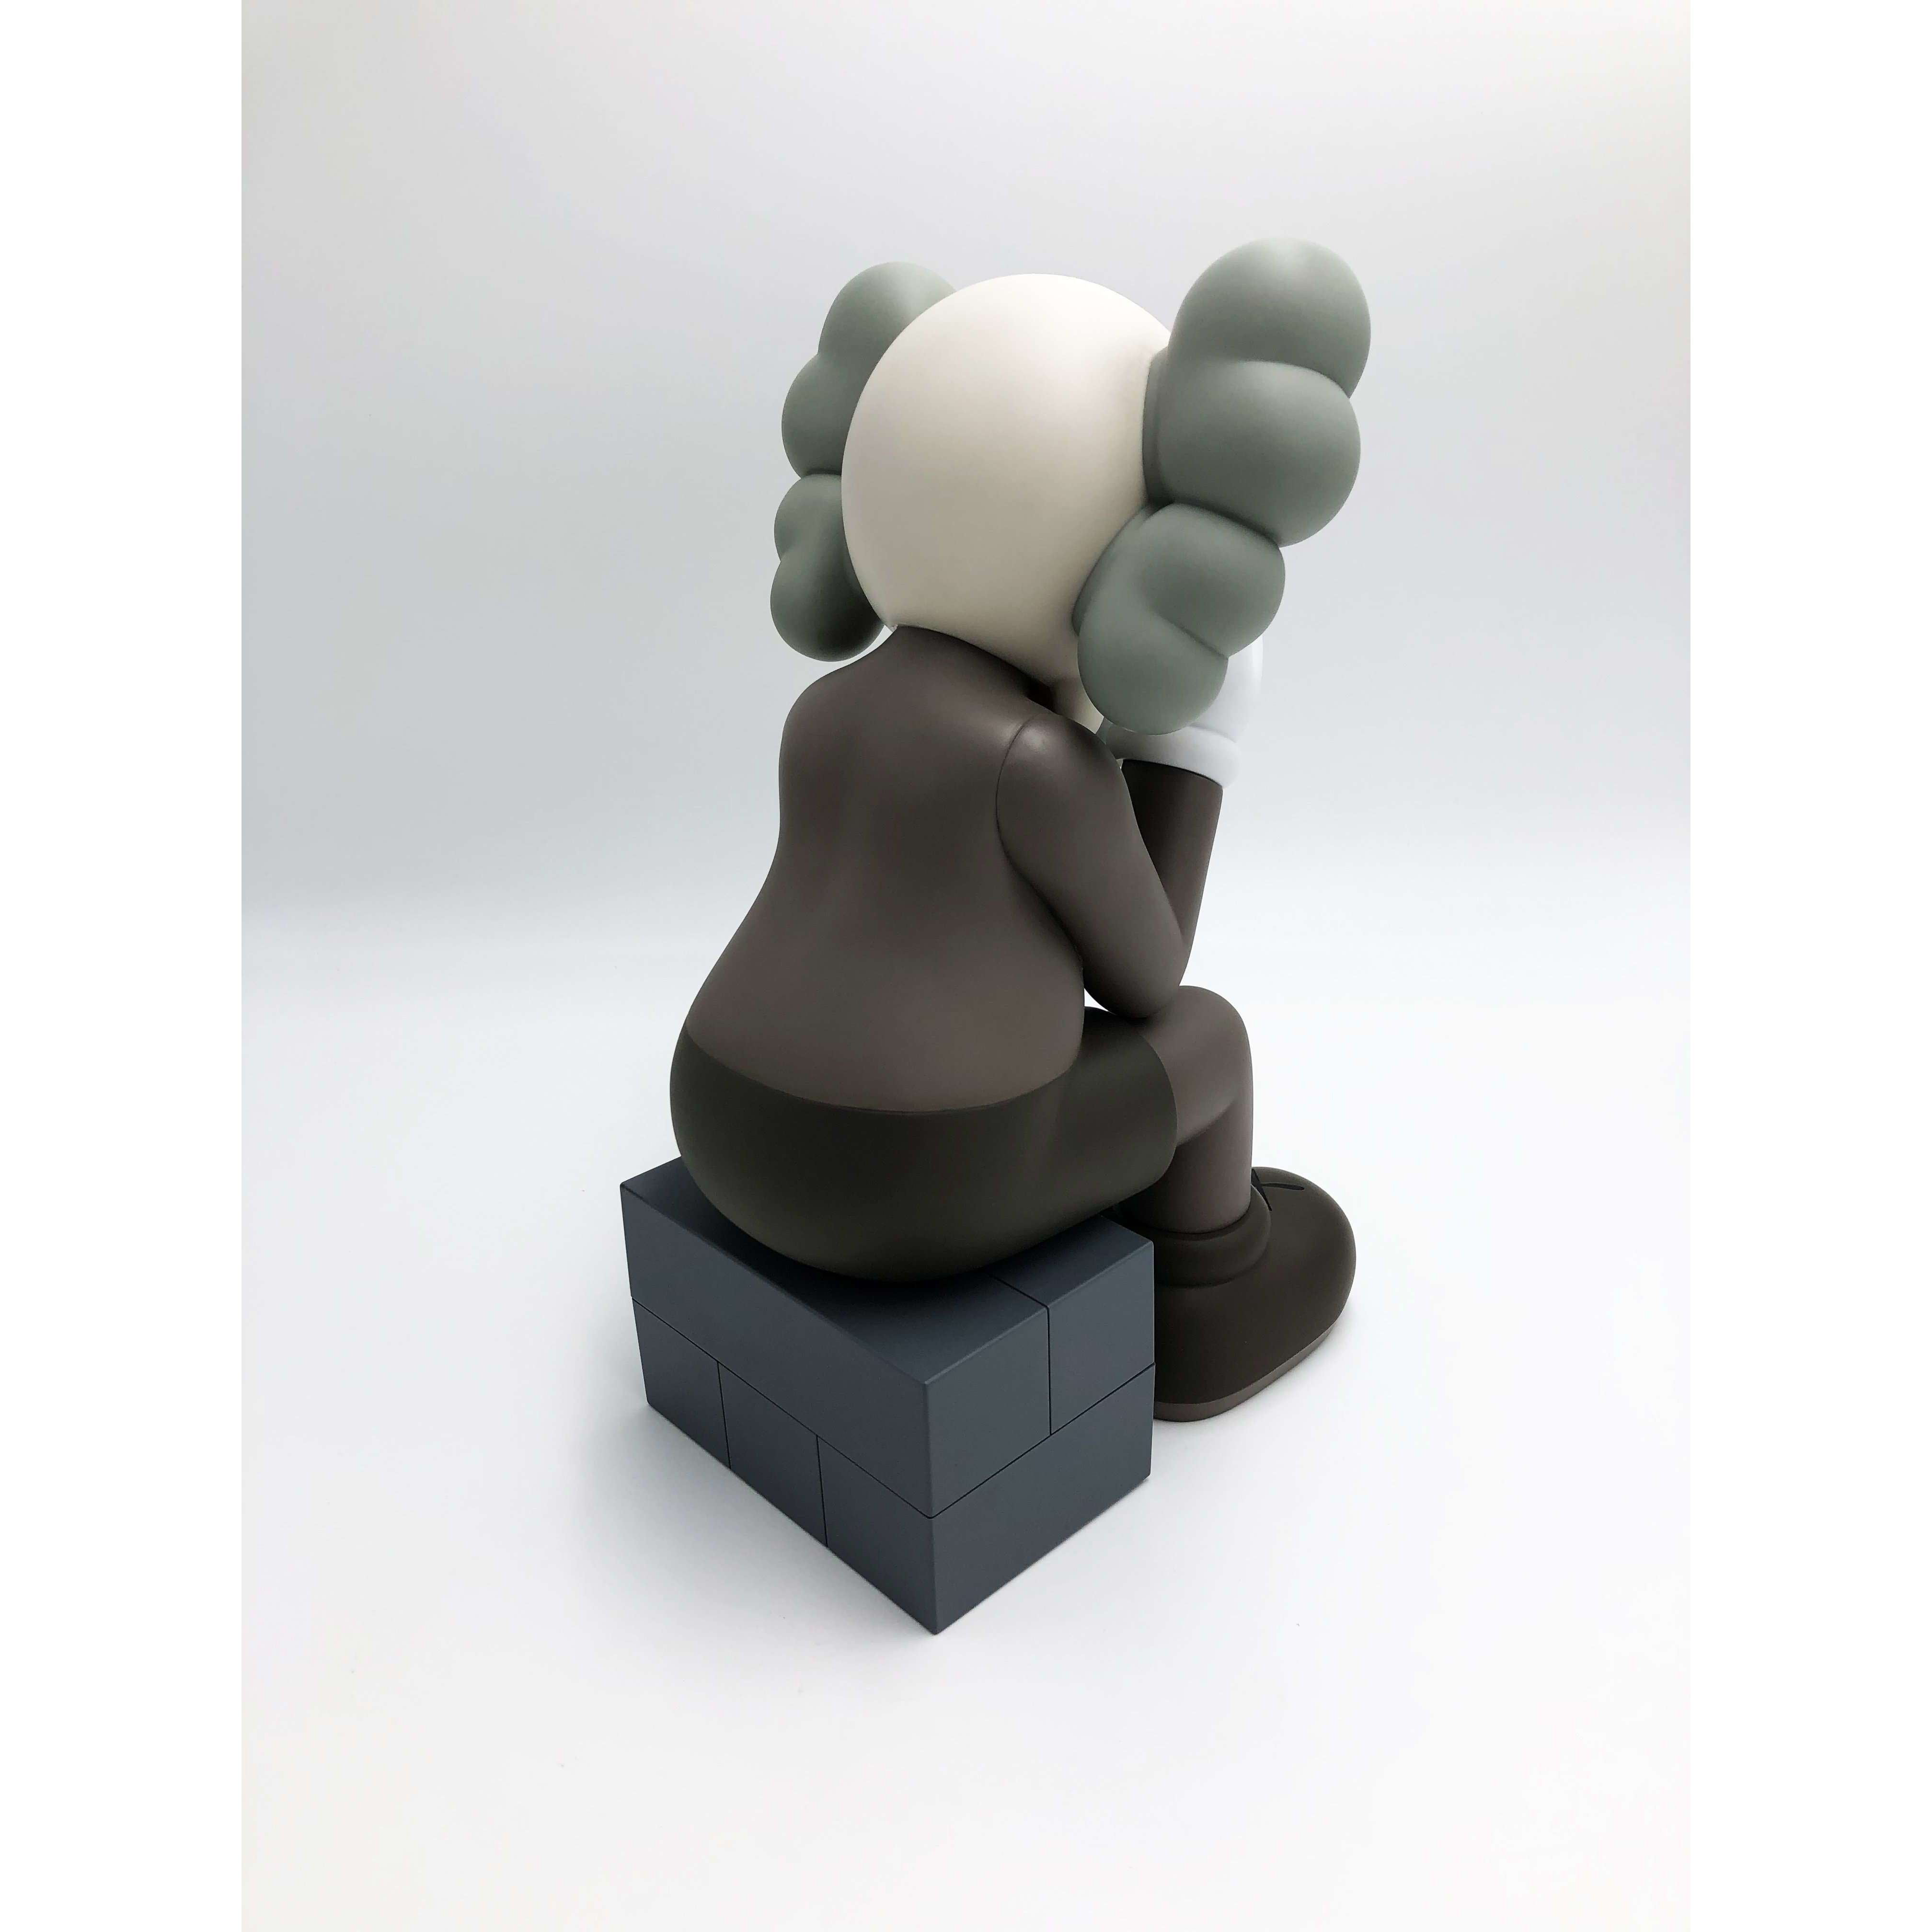 KAWS, Passing Through (Brown), 2013 | Lougher Contemporary